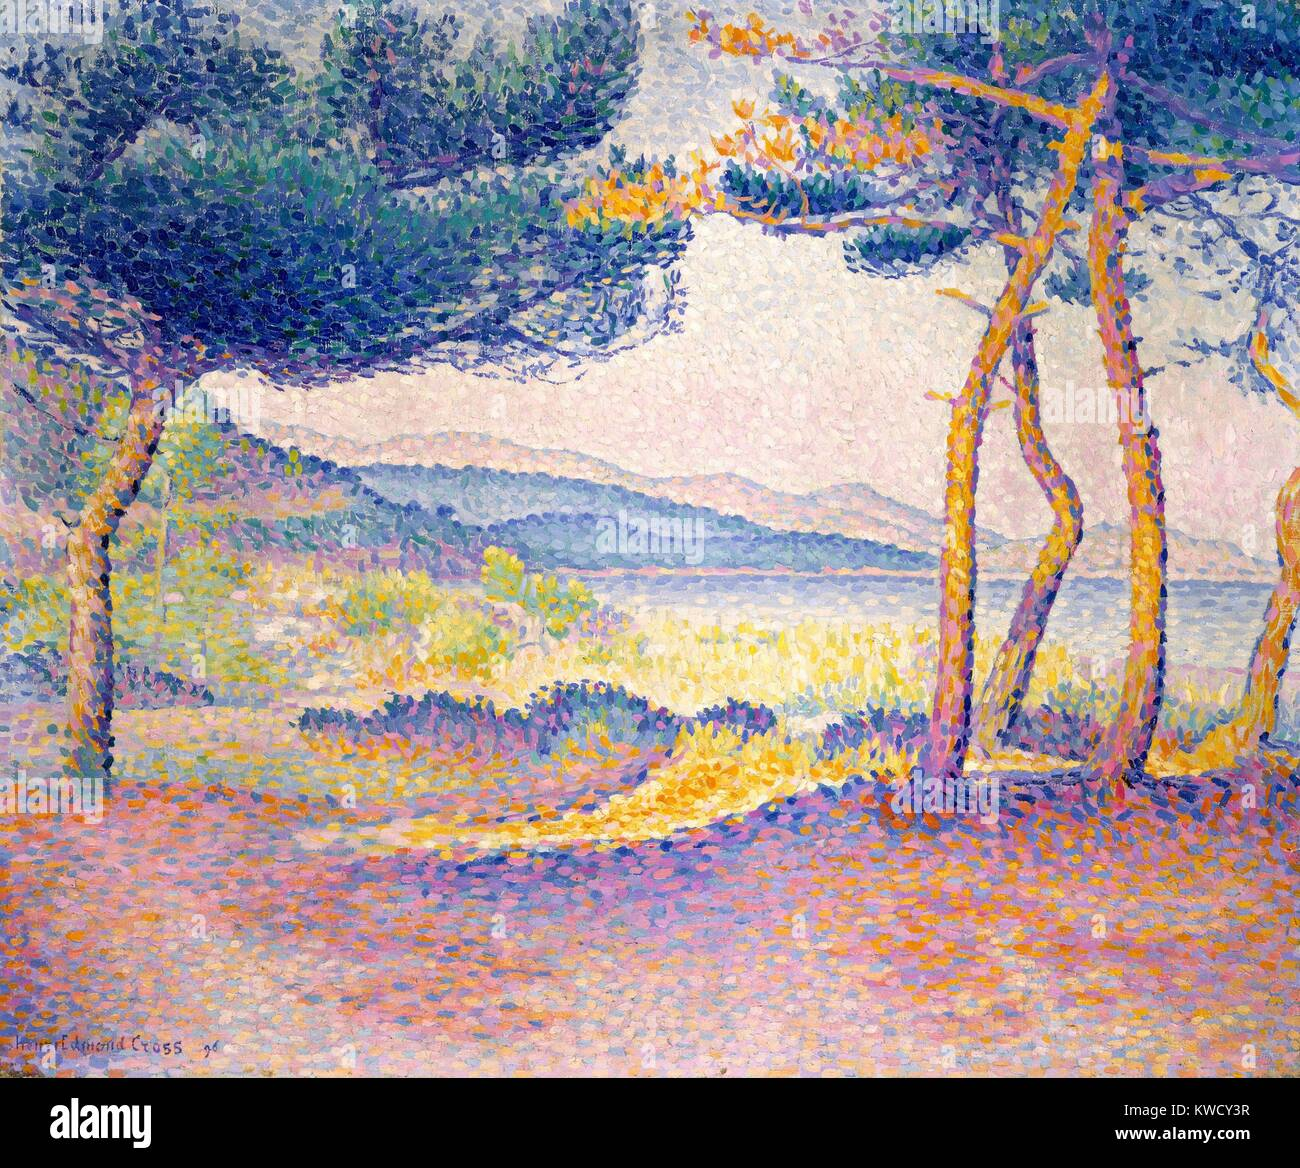 Pines Along the Shore, by Henri-Edmond Cross, 1896, French Neo-Impressionist, oil on canvas. Painted in south France - Stock Image